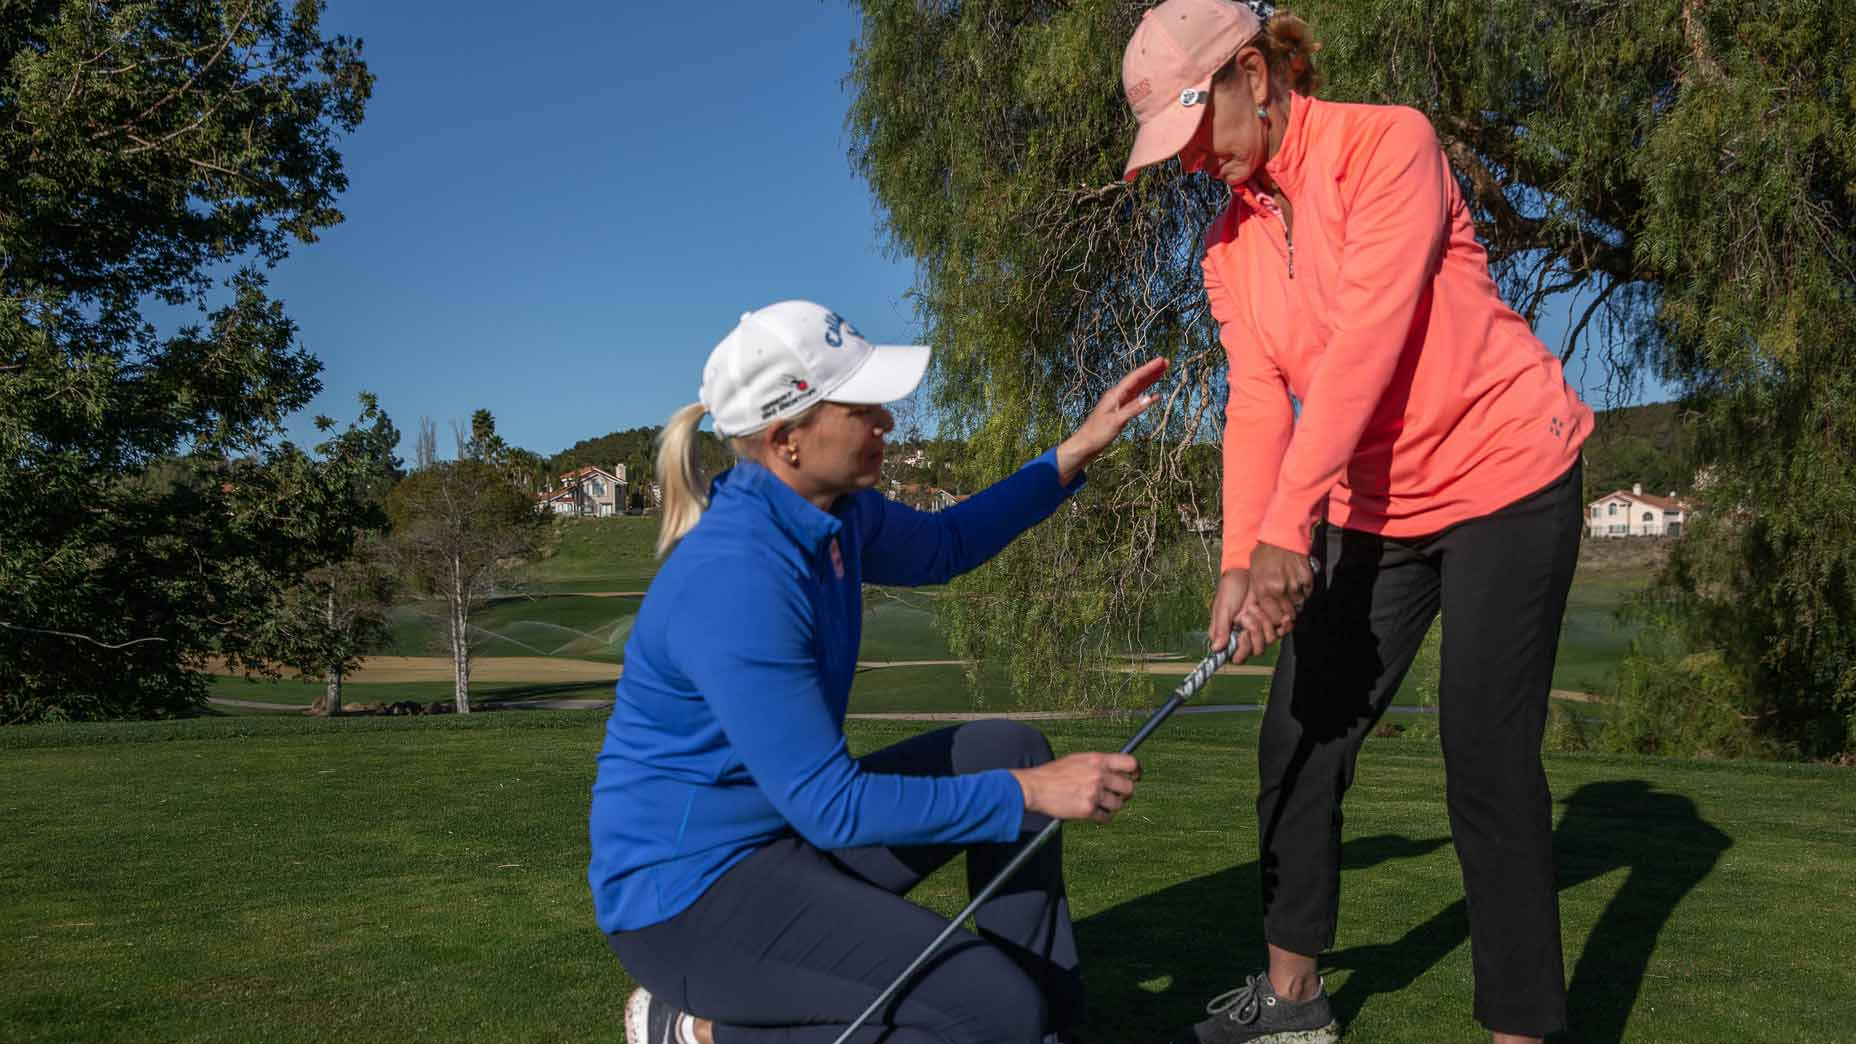 Women's golf: Why learning the difference between consistency and repeatable processes will change your game